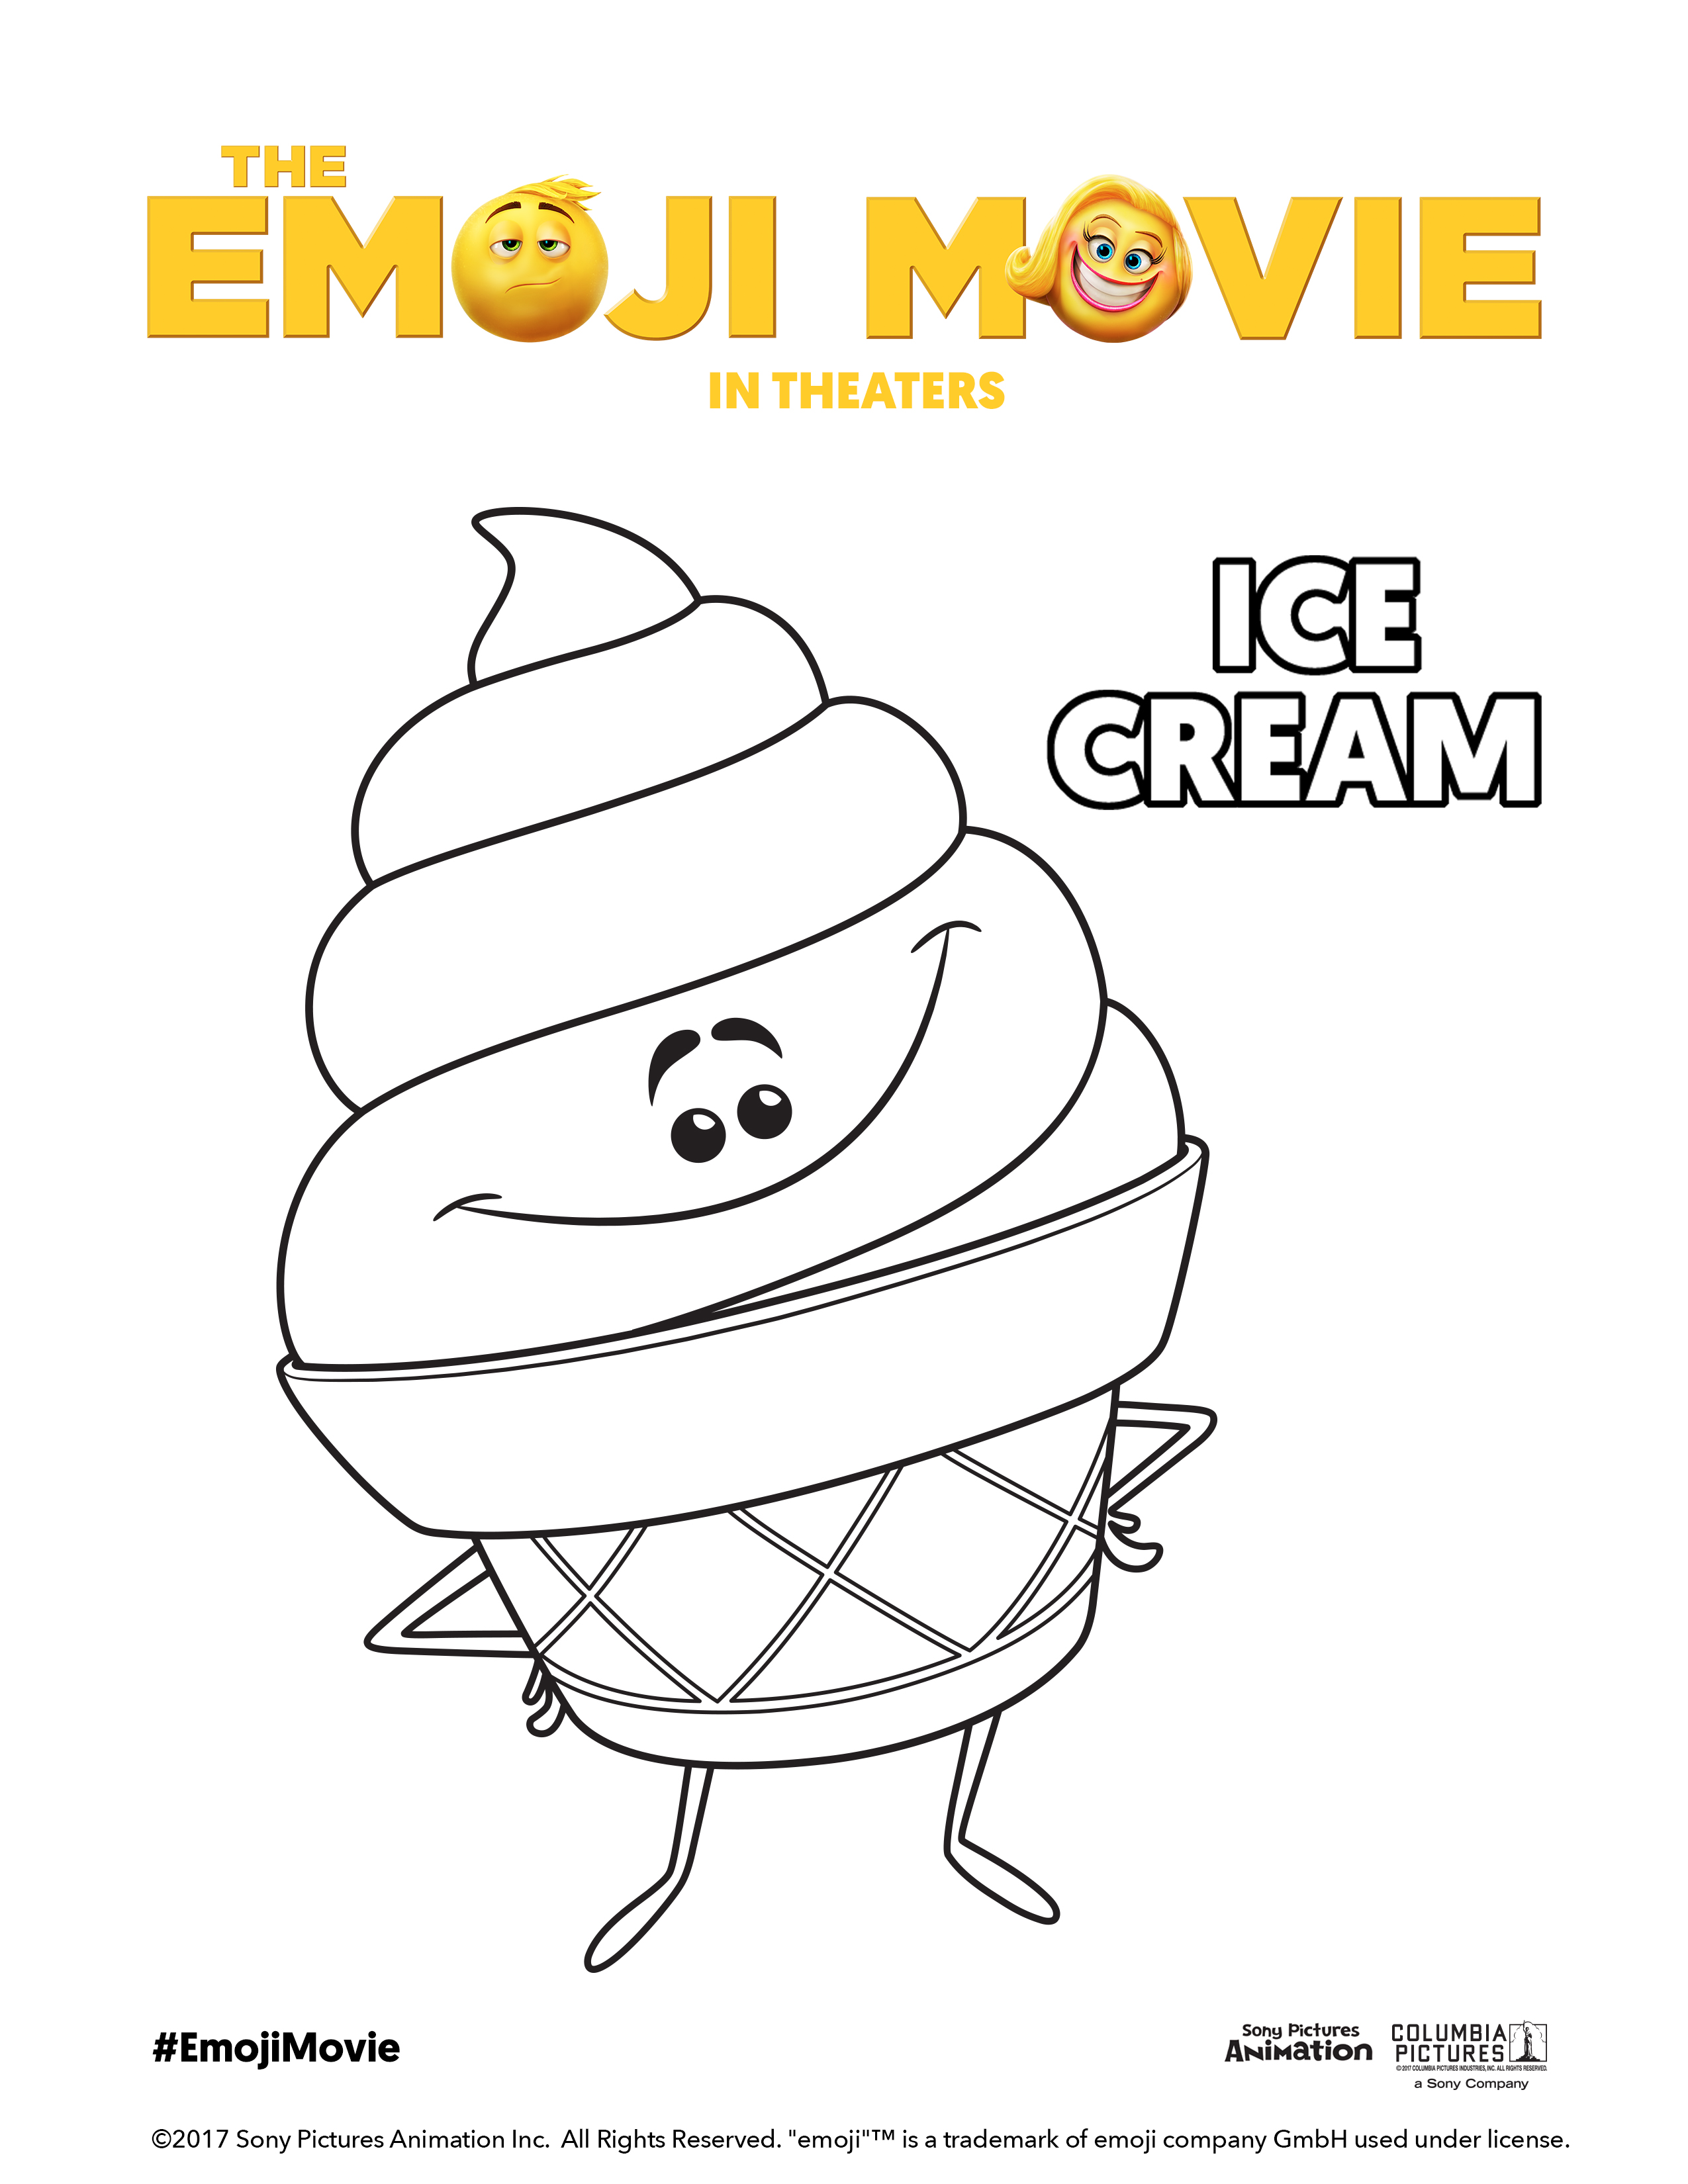 Coloring Pages Emoji Movie : The emoji movie coloring book heart pages